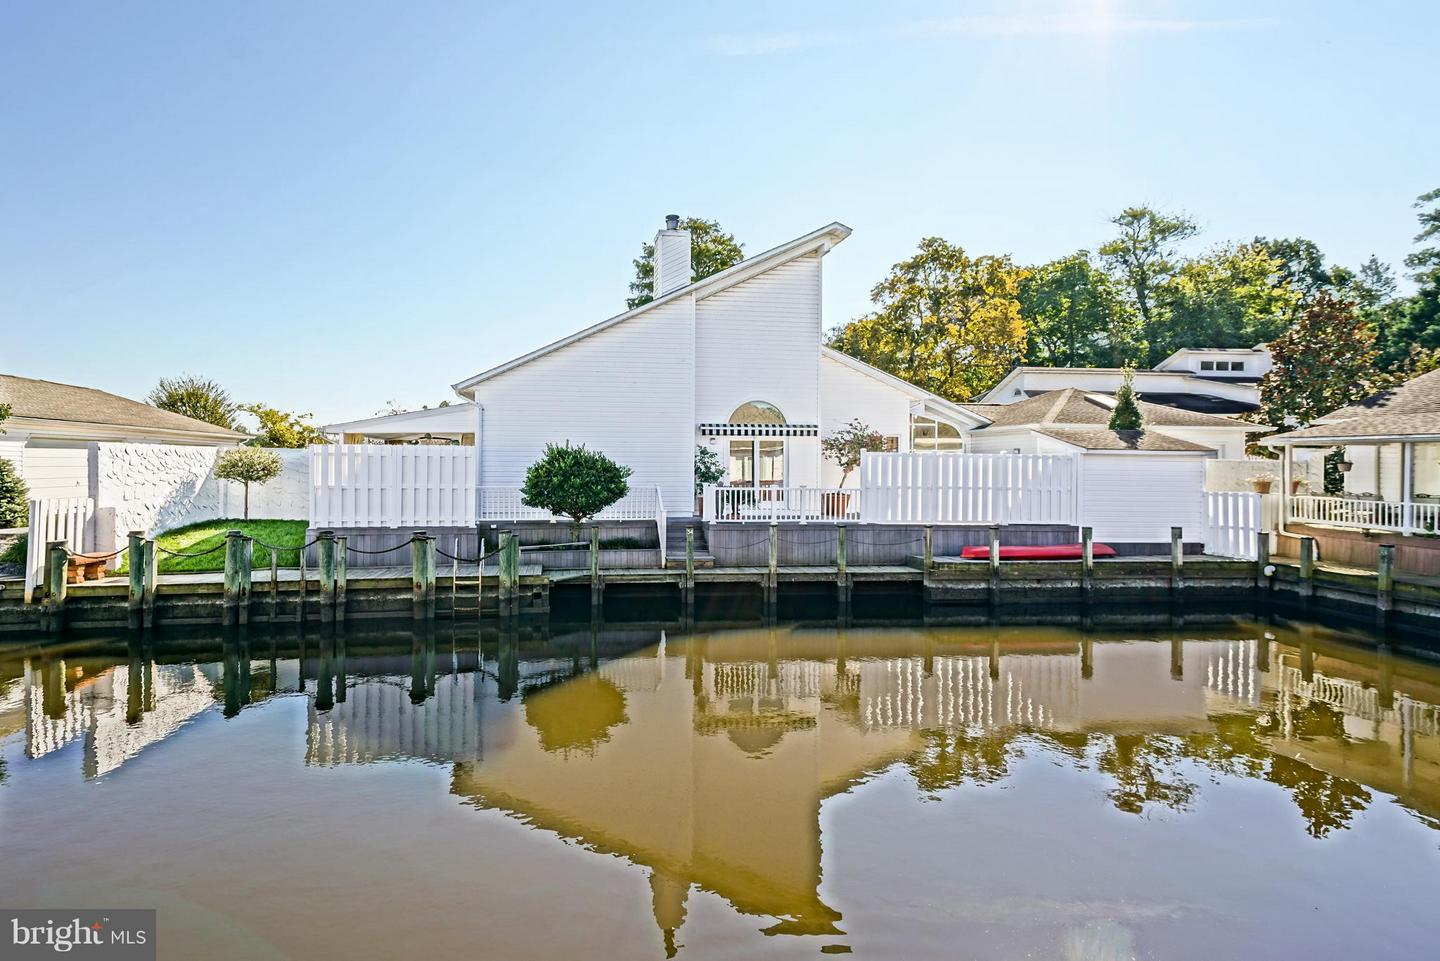 1009977298-300927273097-2019-05-18-11-04-50 34 Hunters Pointe | Millsboro, DE Real Estate For Sale | MLS# 1009977298  - Lee Ann Group